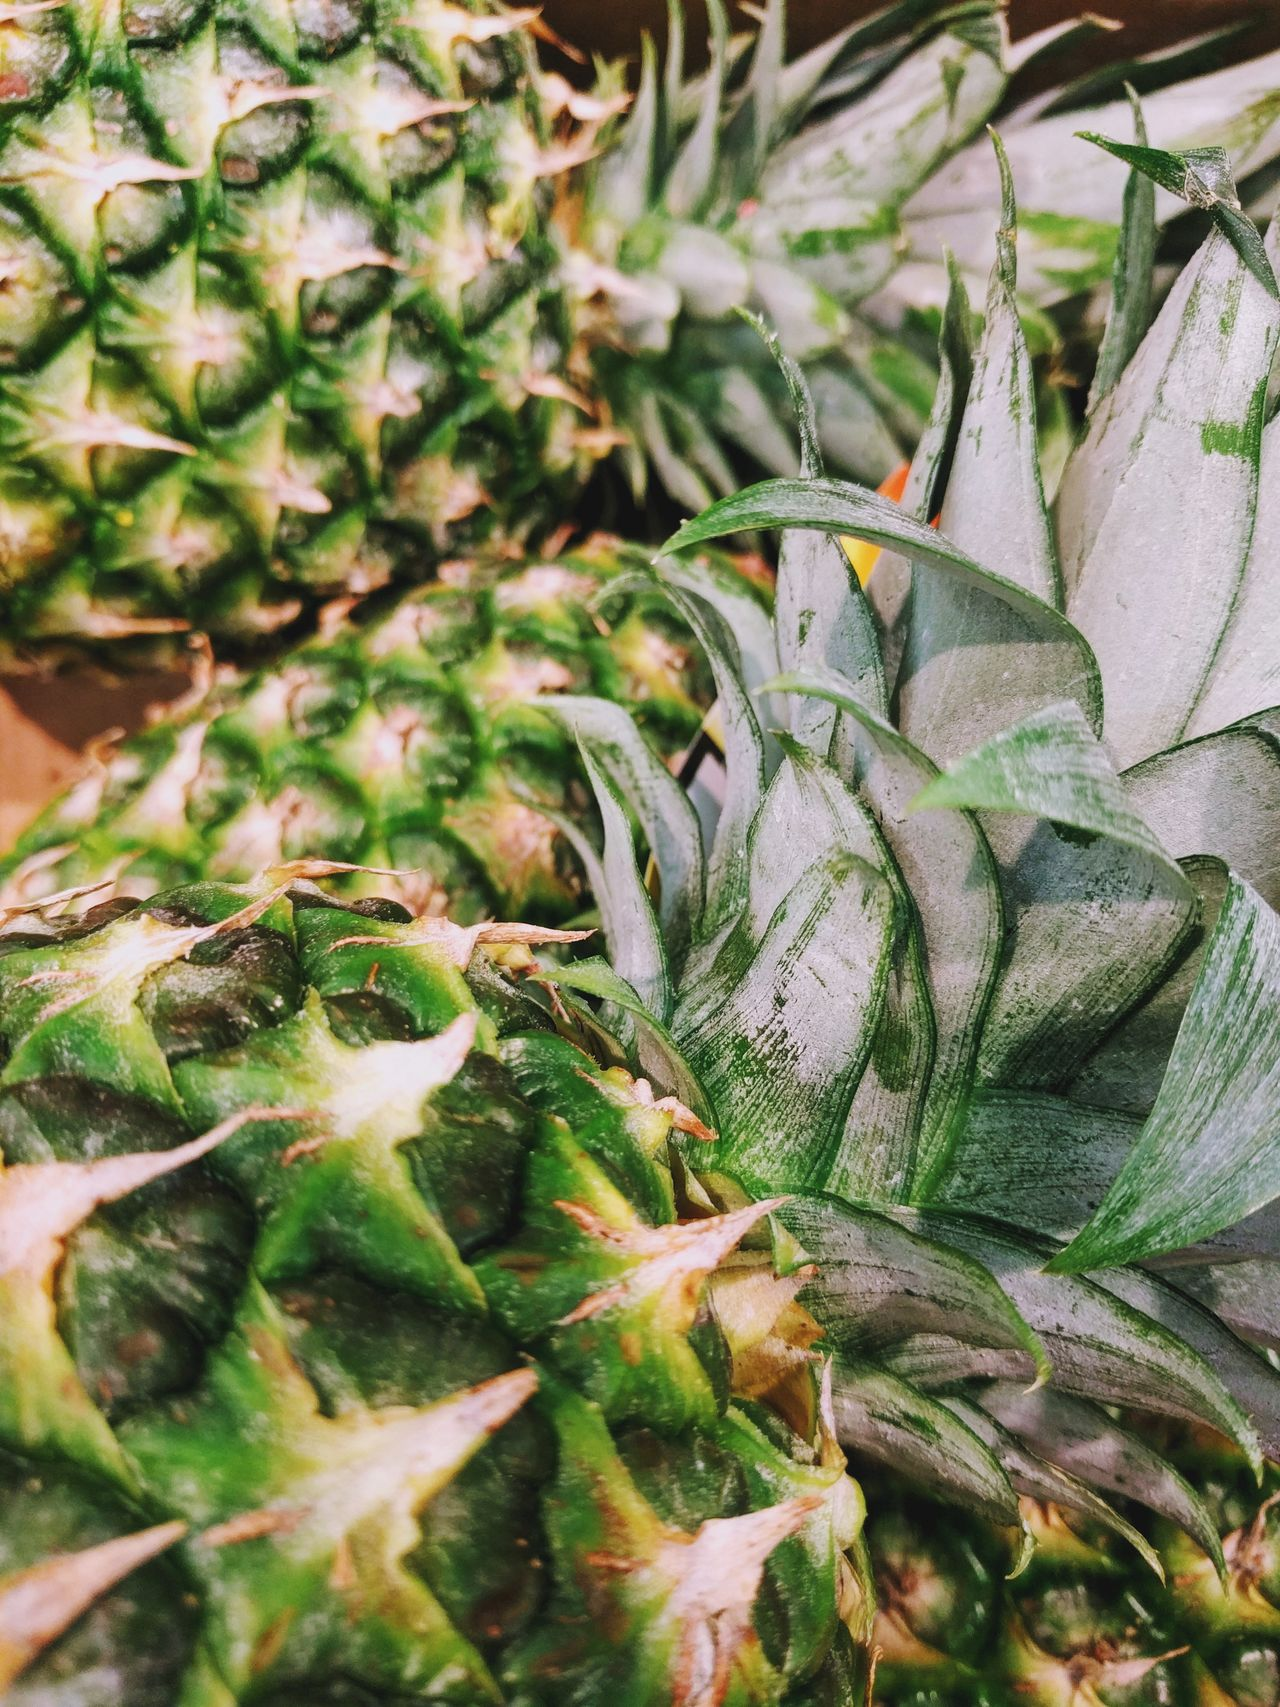 Growth Nature Plant Spiked No People Outdoors Green Color Full Frame Succulent Plant Close-up Day Cactus Backgrounds Beauty In Nature Pineapple Fruit Healthy Eating Food Freshness